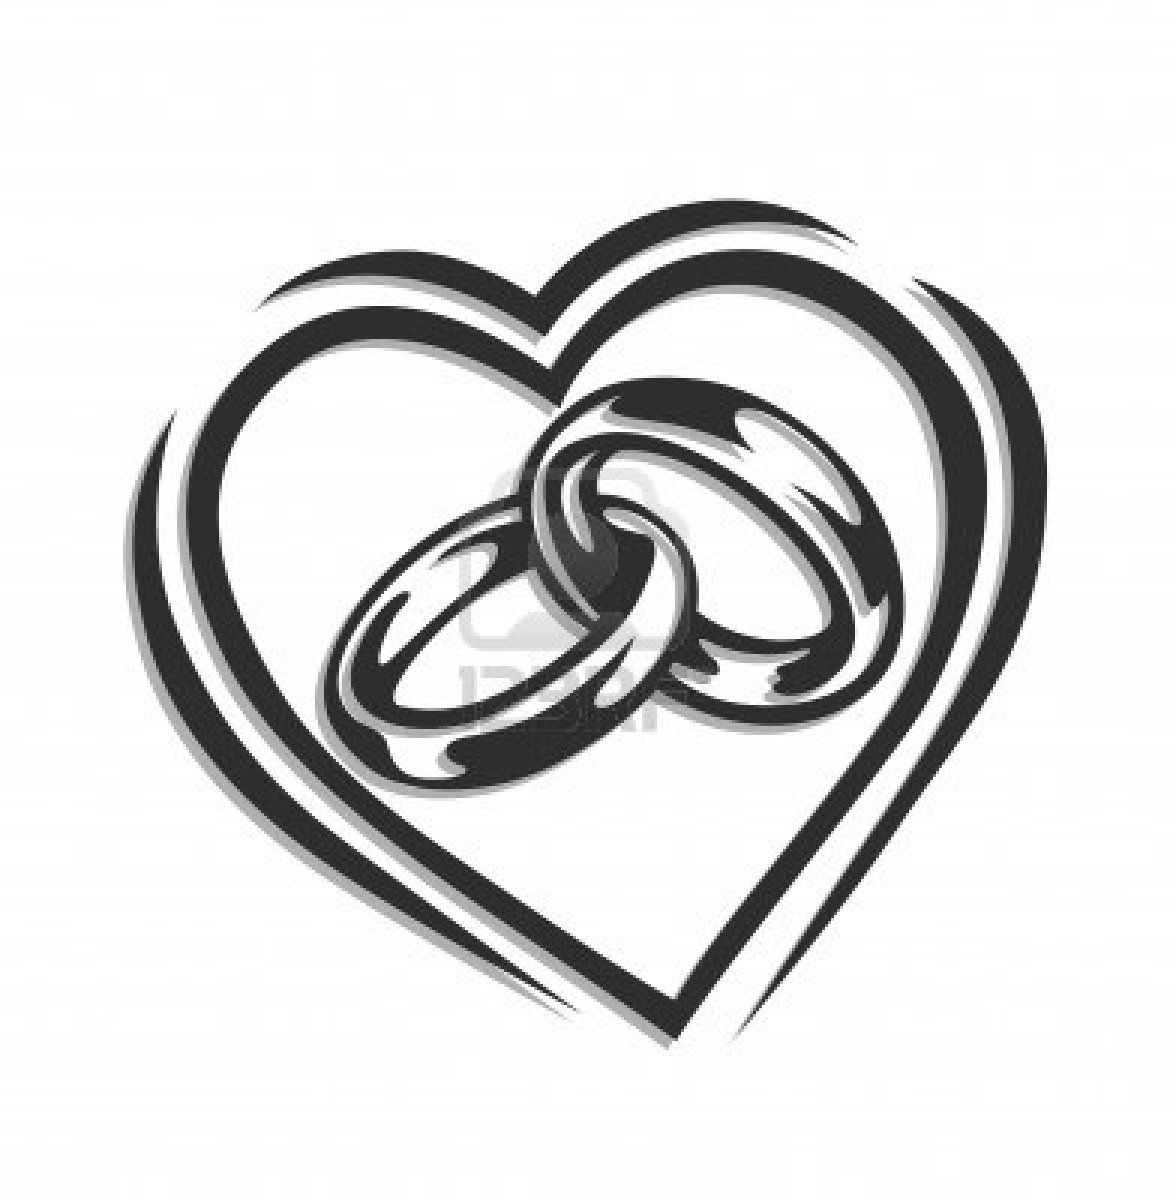 Image Result For Free Clipart Wedding Rings Intertwined